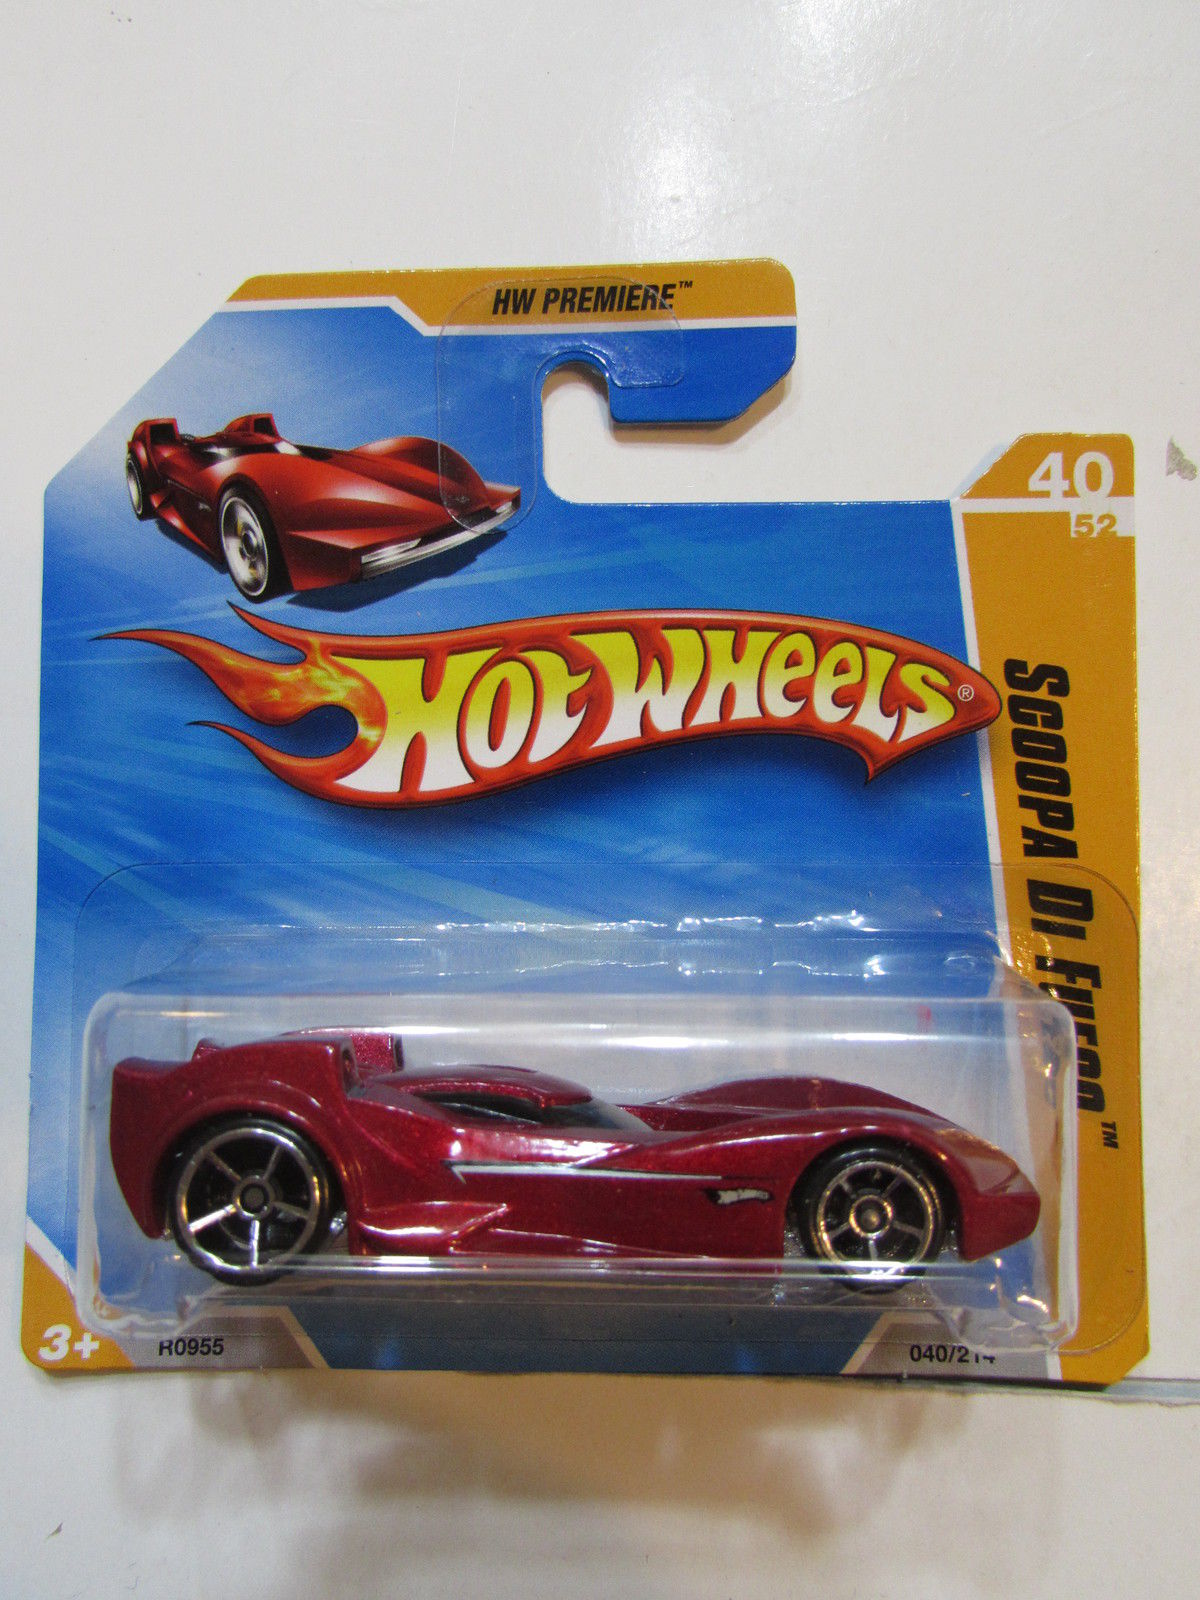 HOT WHEELS 2010 HW PREMIERE SCOOPA DI FUEGO RED SHORT CARD